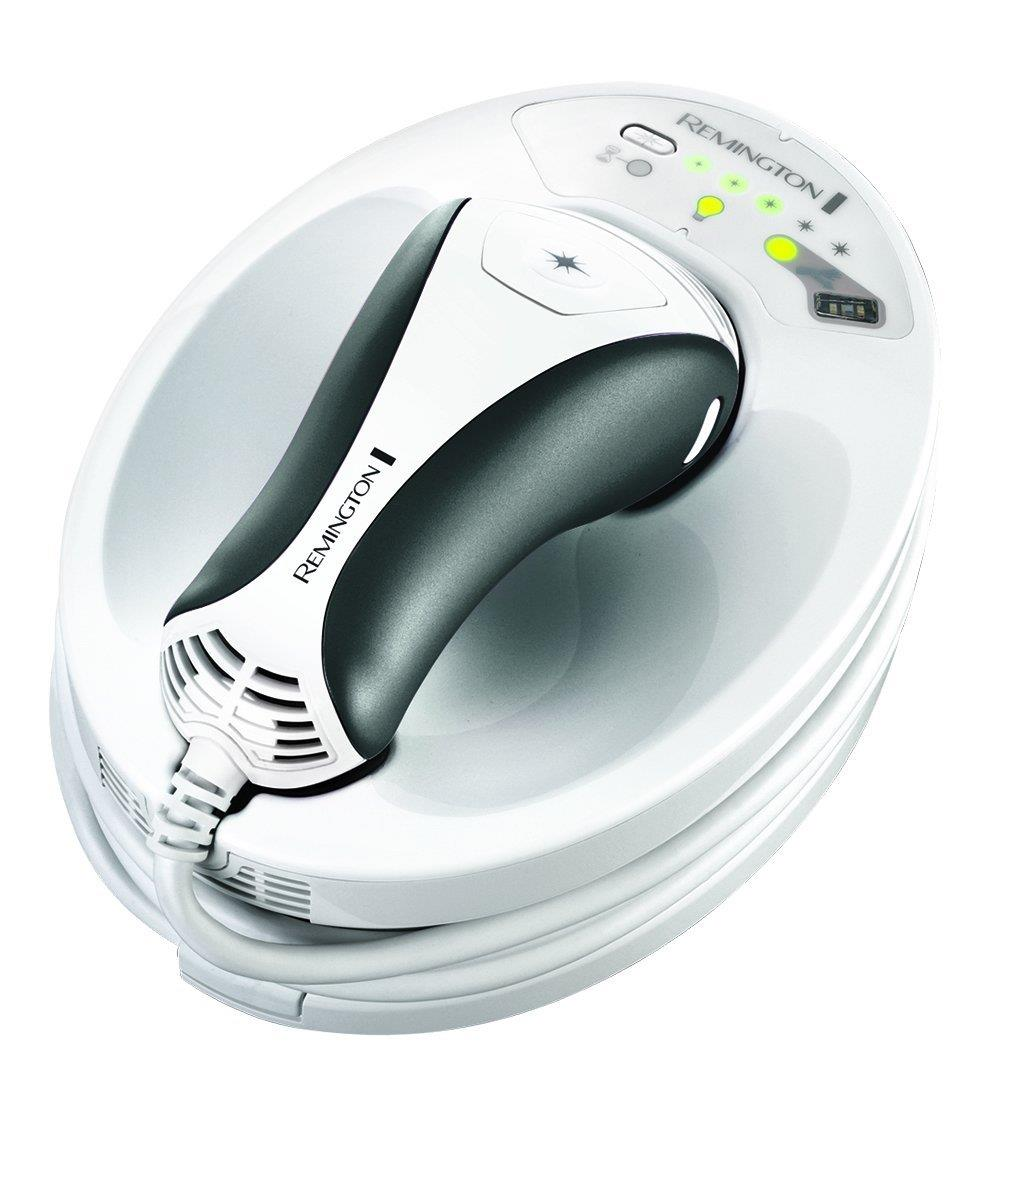 i remington ipl6250